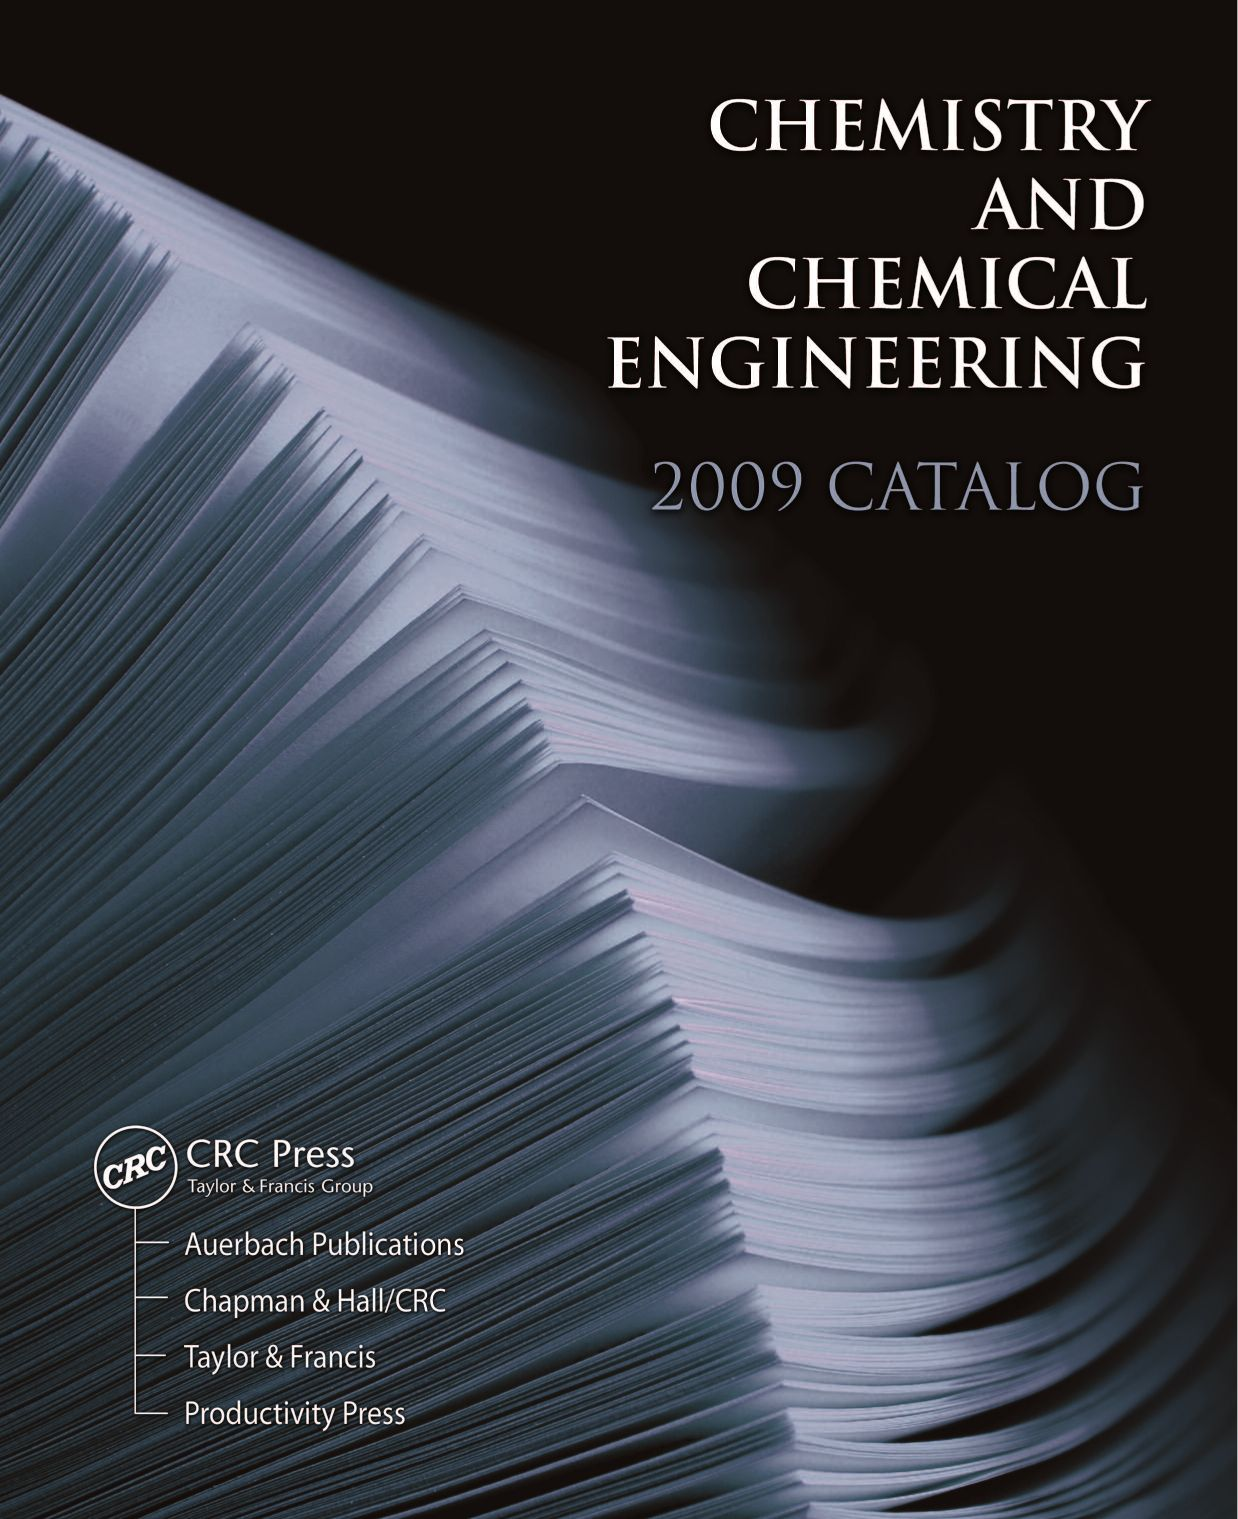 Energie Concept Lignan De Bordeaux chemistry and chemical engineeringkatharine bale - issuu